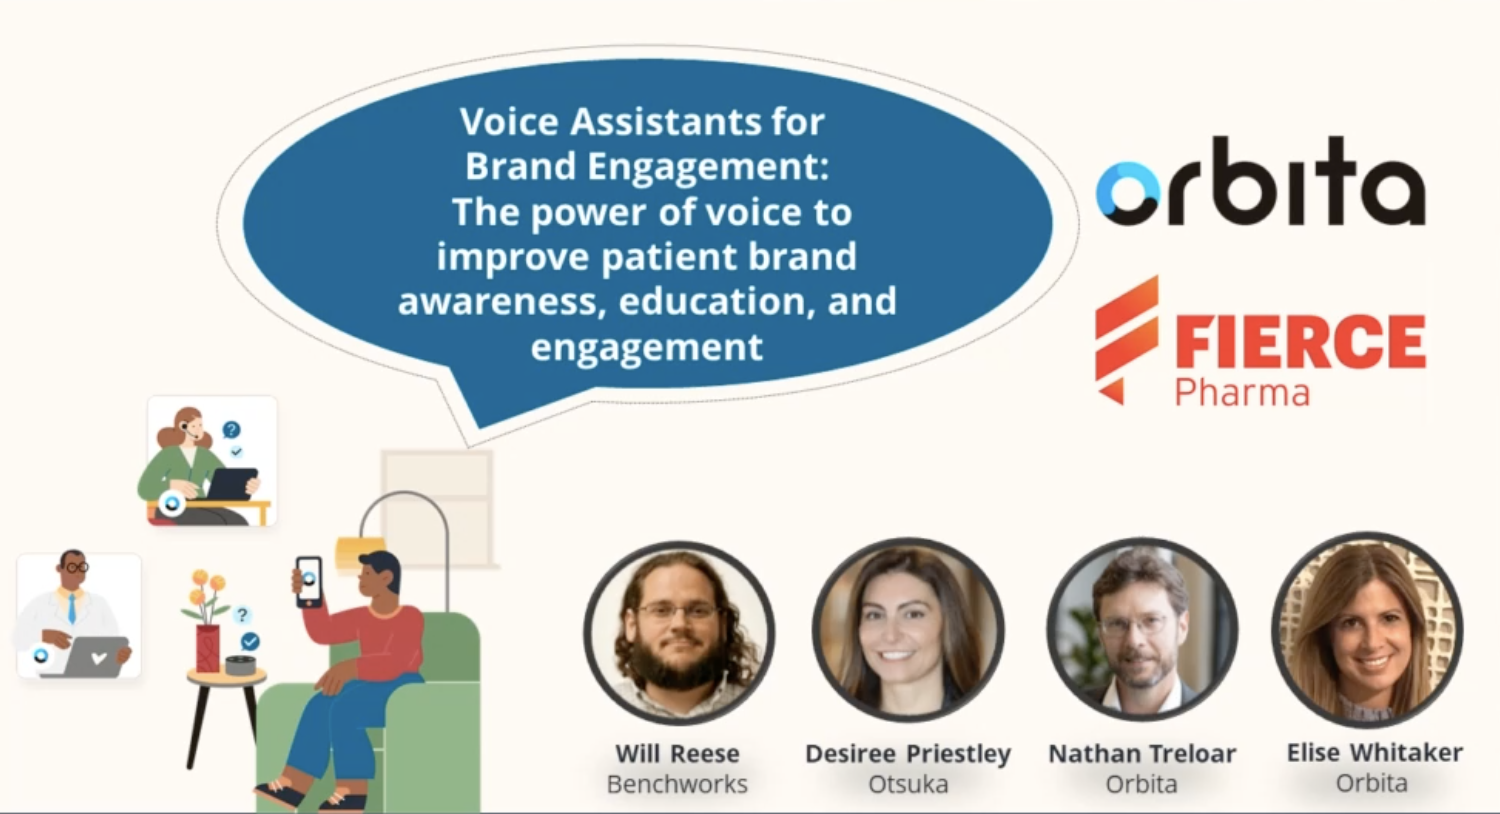 Voice Assistants for Brand Engagement: The power of voice to improve patient brand awareness, education, and engagement